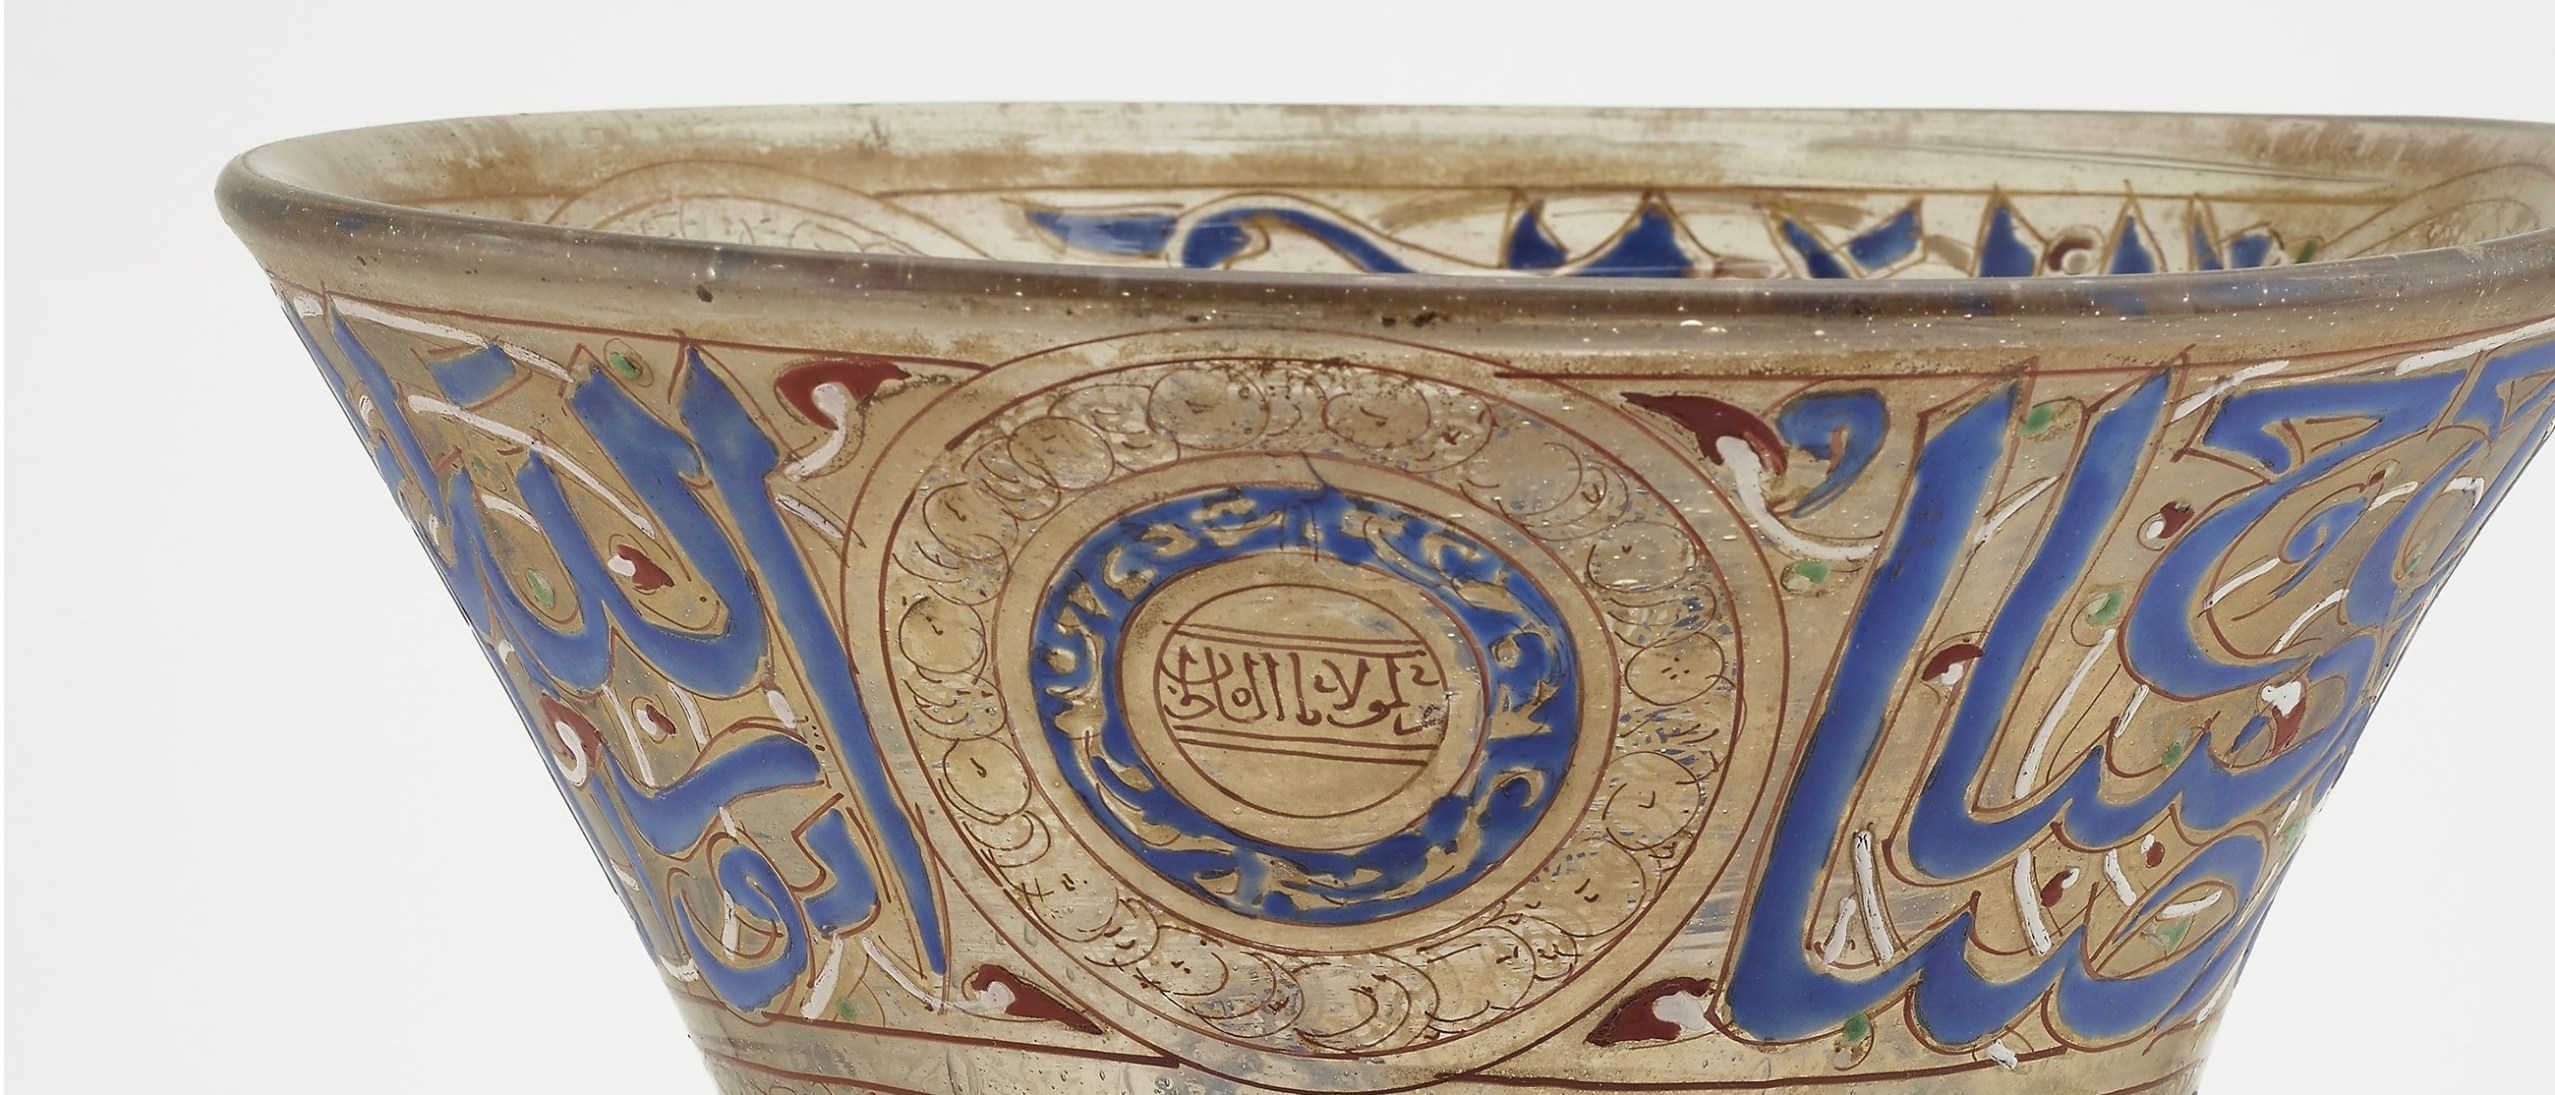 Detail image, Mosque lamp; Mamluk period, ca. 1360; Glass, enameled and gilded; Egypt; Purchase — Charles Lang Freer Endowment; Freer Gallery of Art F1957.19